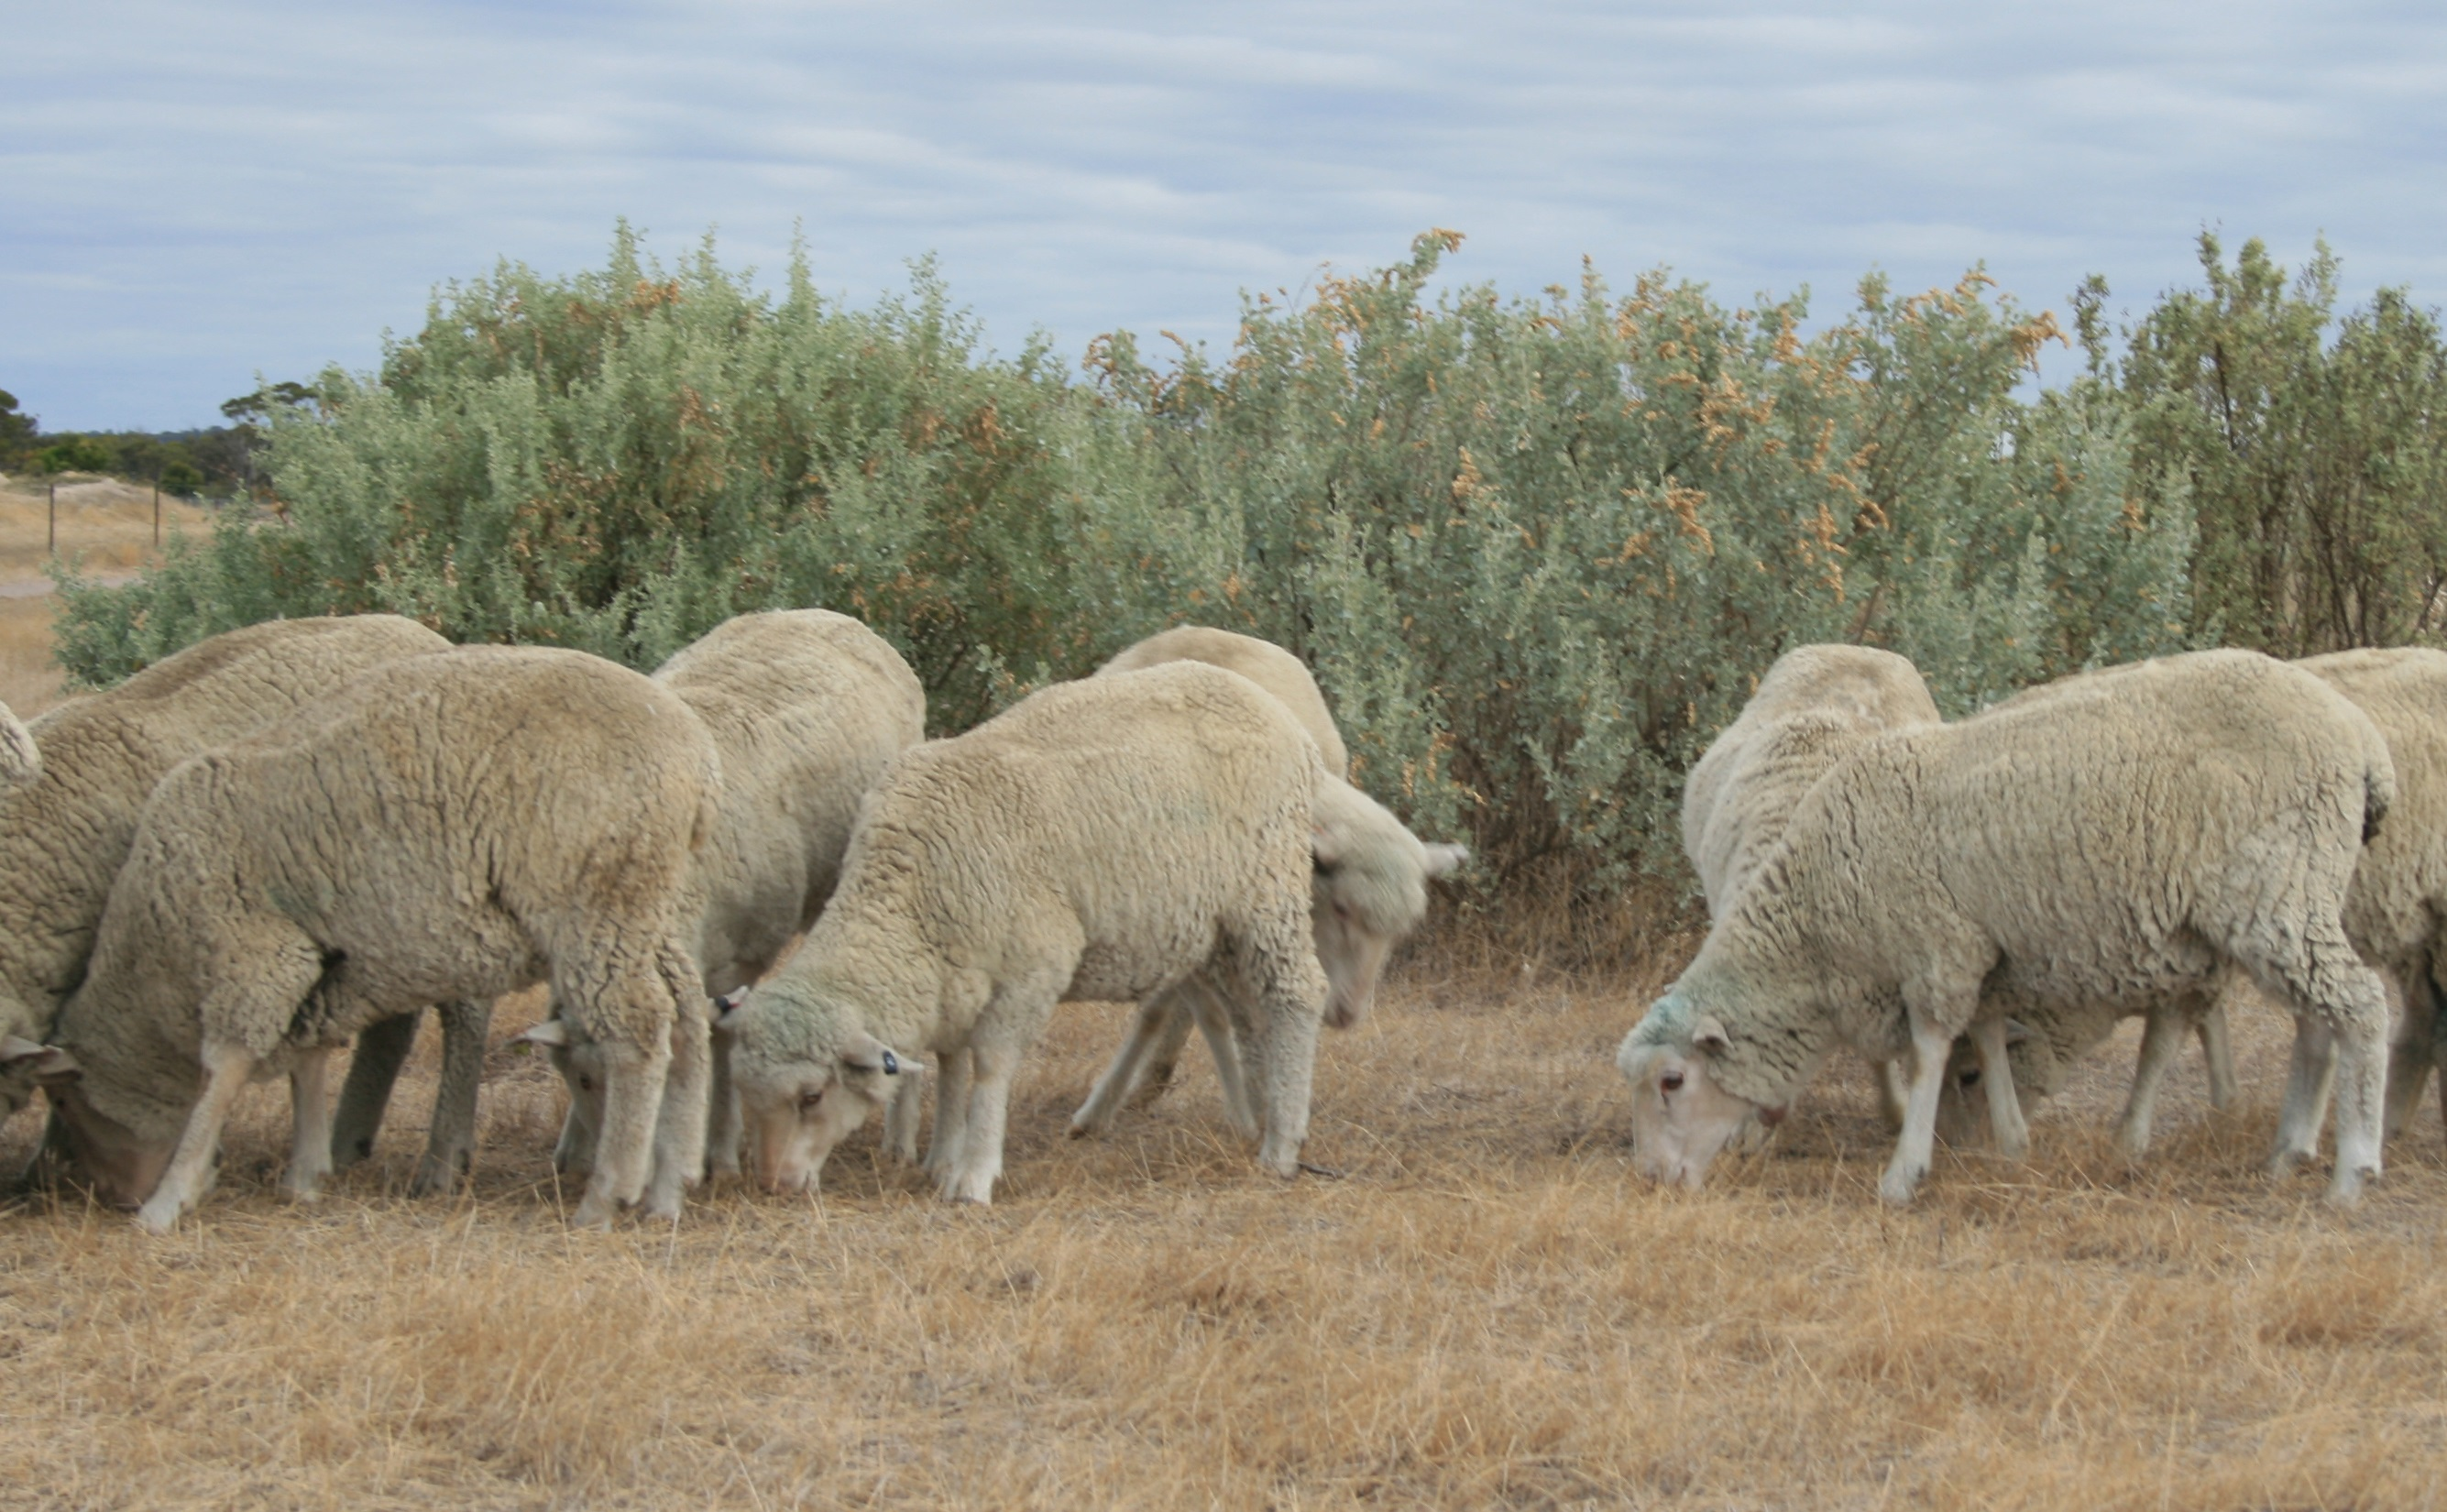 a group of sheep grazing by some bushes